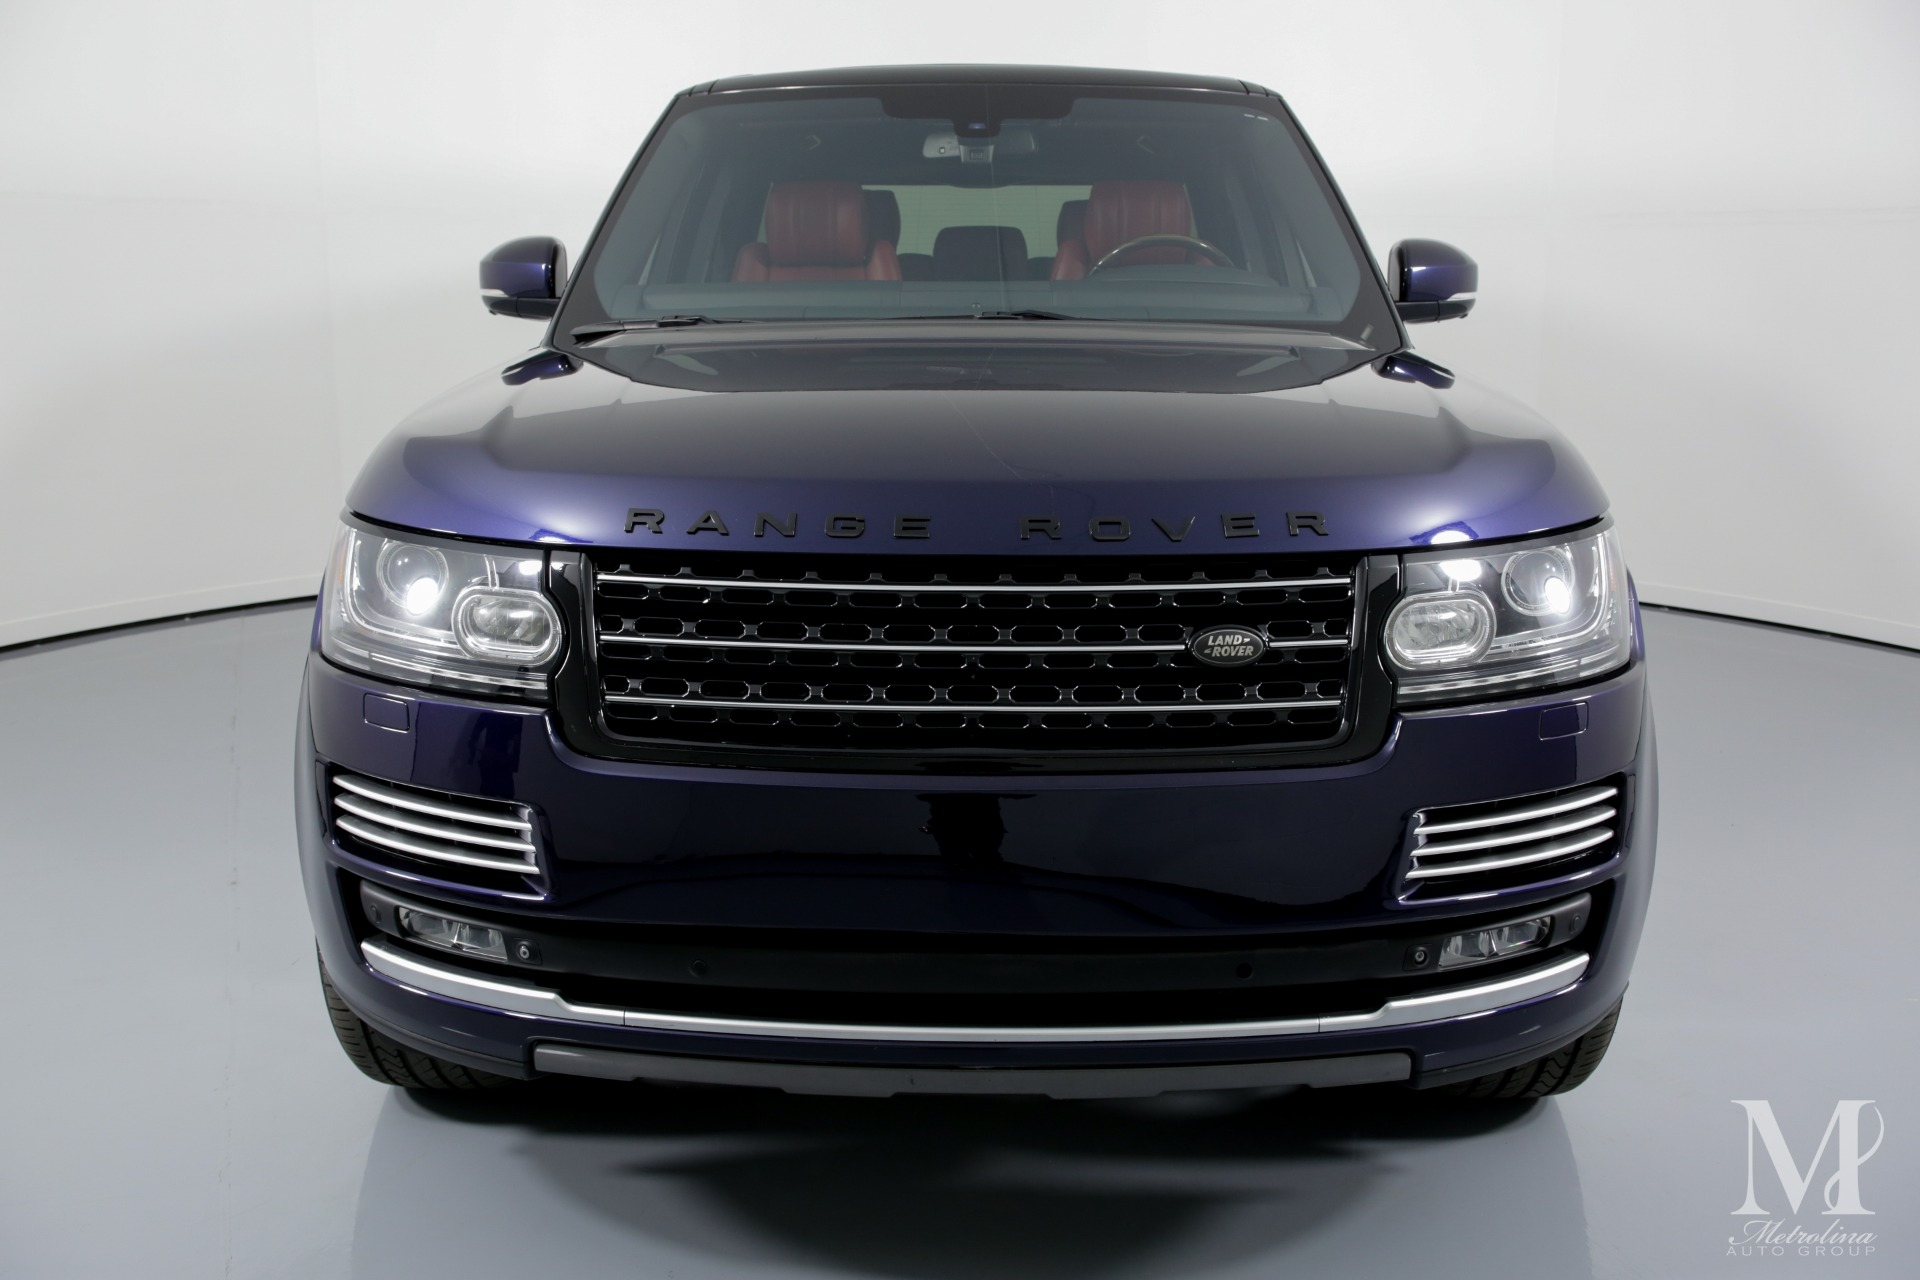 Used 2014 Land Rover Range Rover Autobiography 4x4 4dr SUV for sale Sold at Metrolina Auto Group in Charlotte NC 28217 - 3